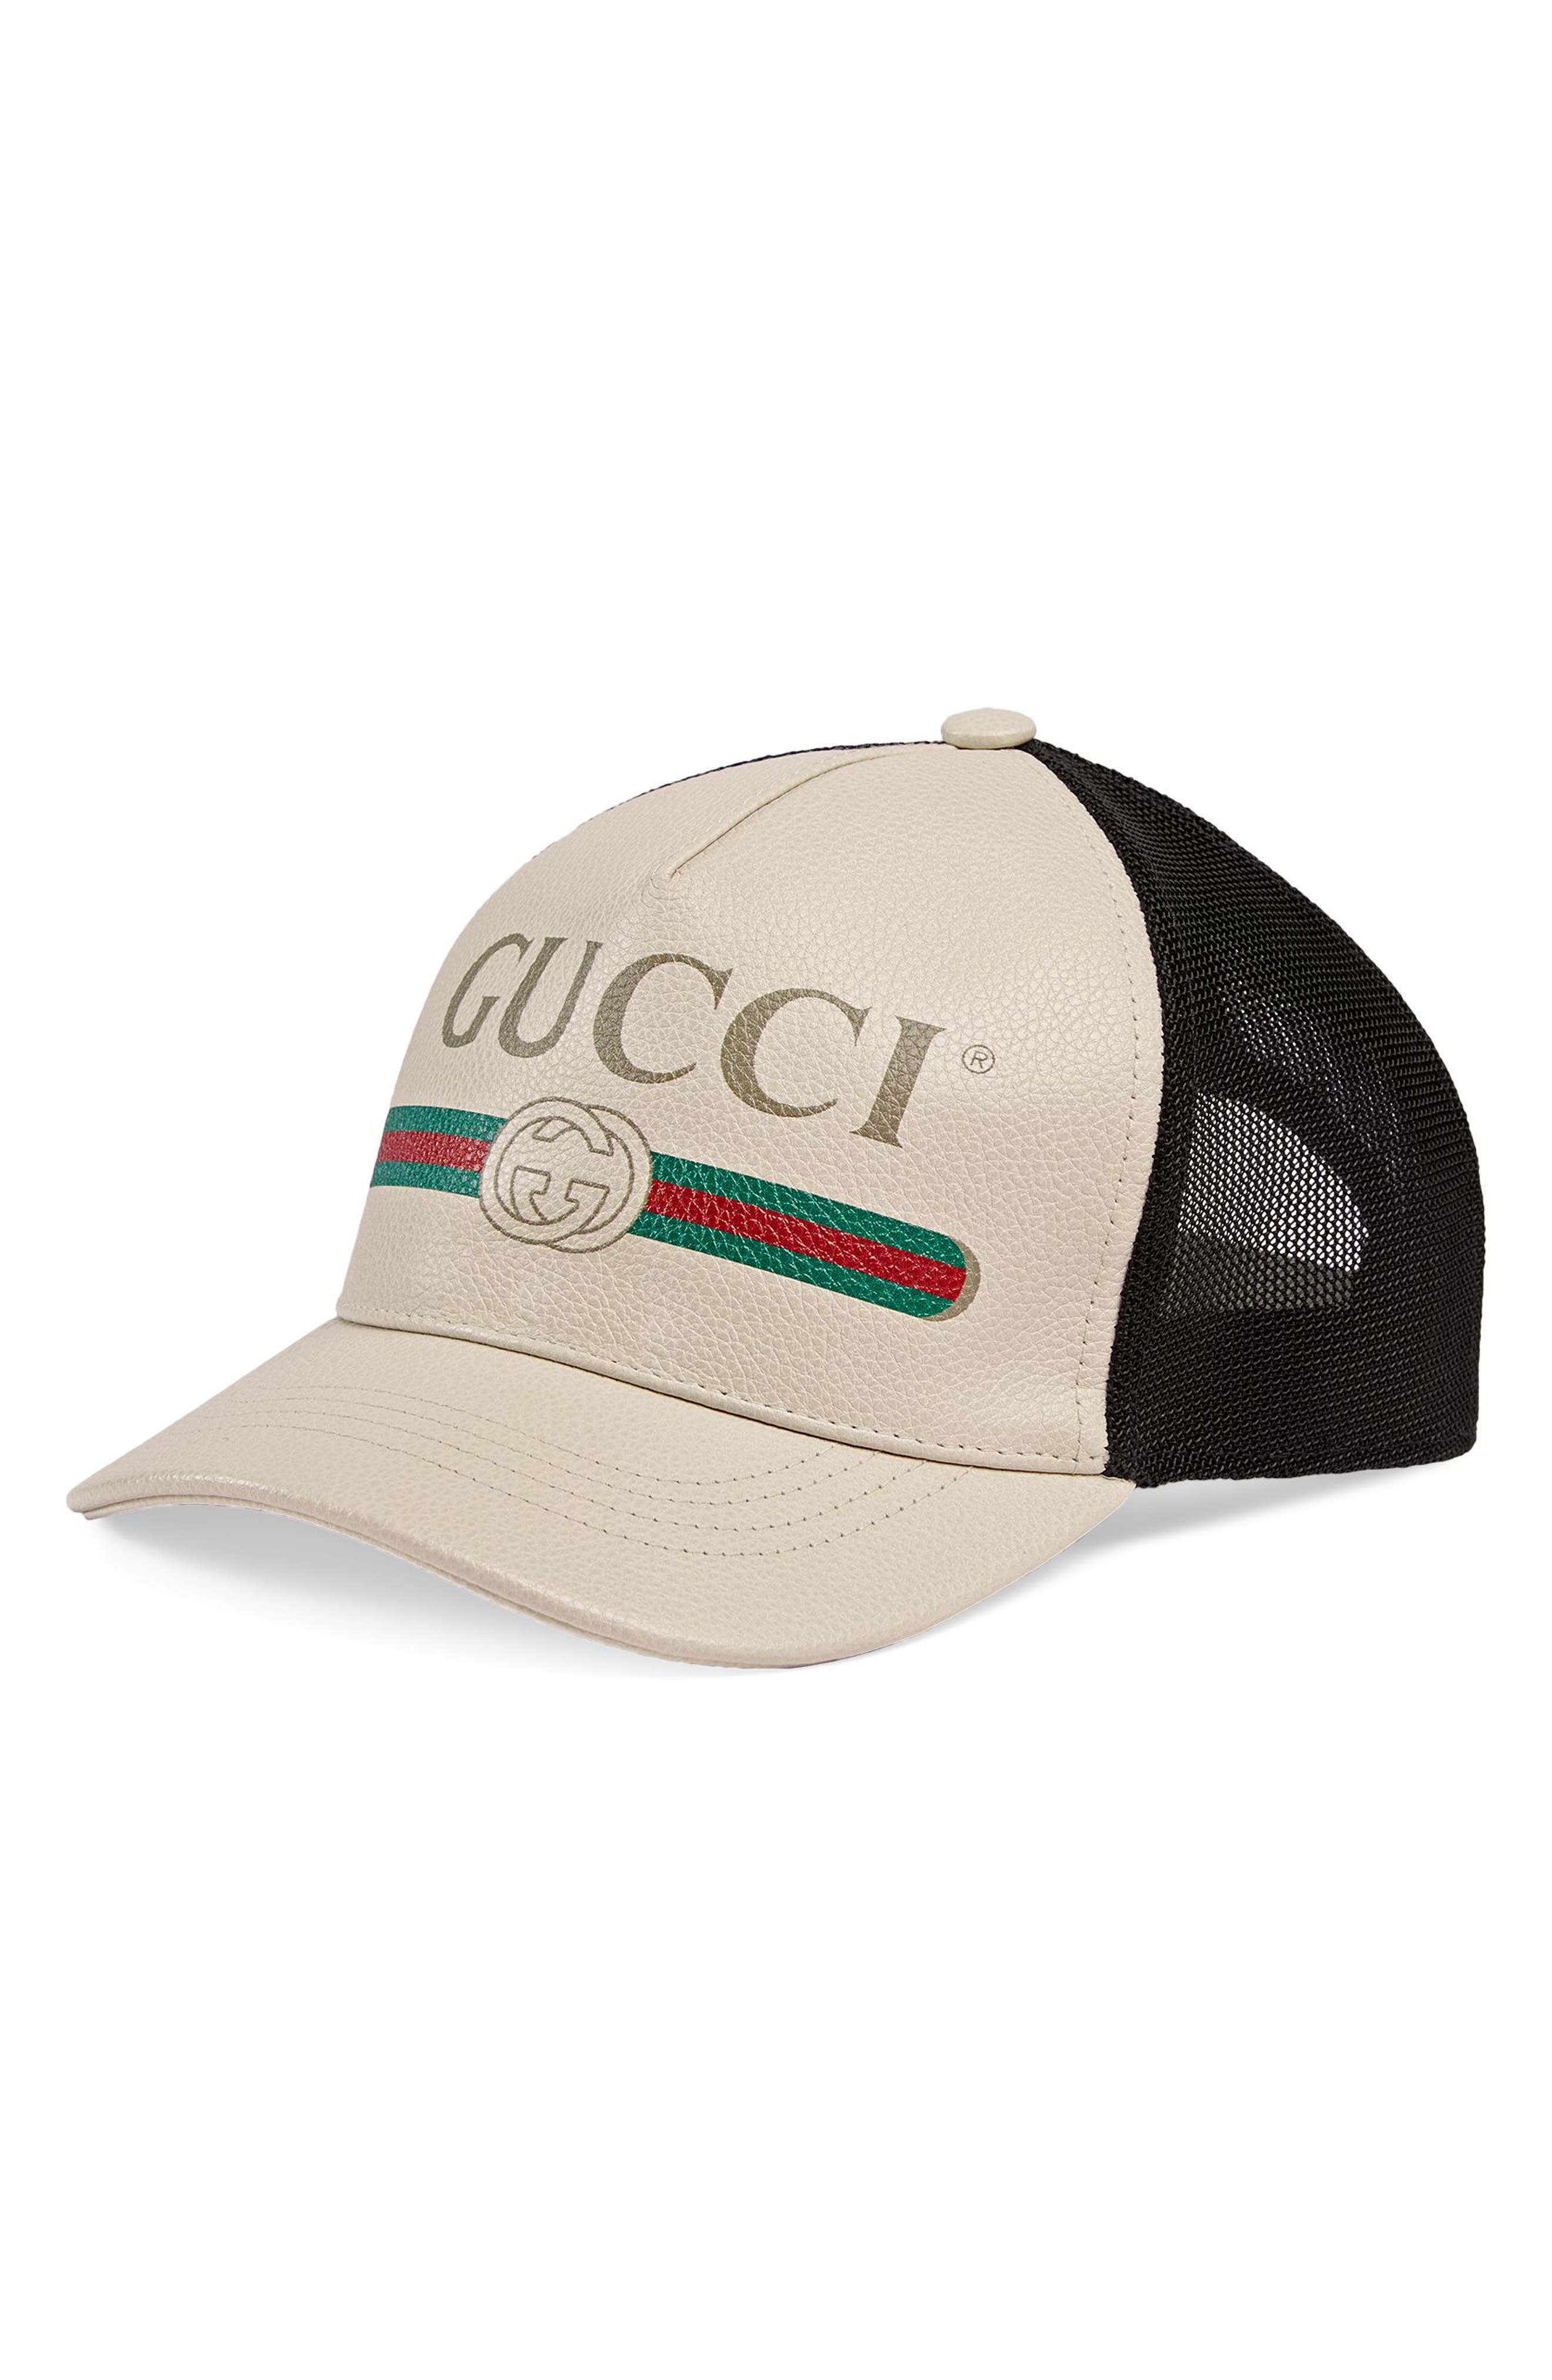 Gucci Vintage Logo Leather Ball Cap